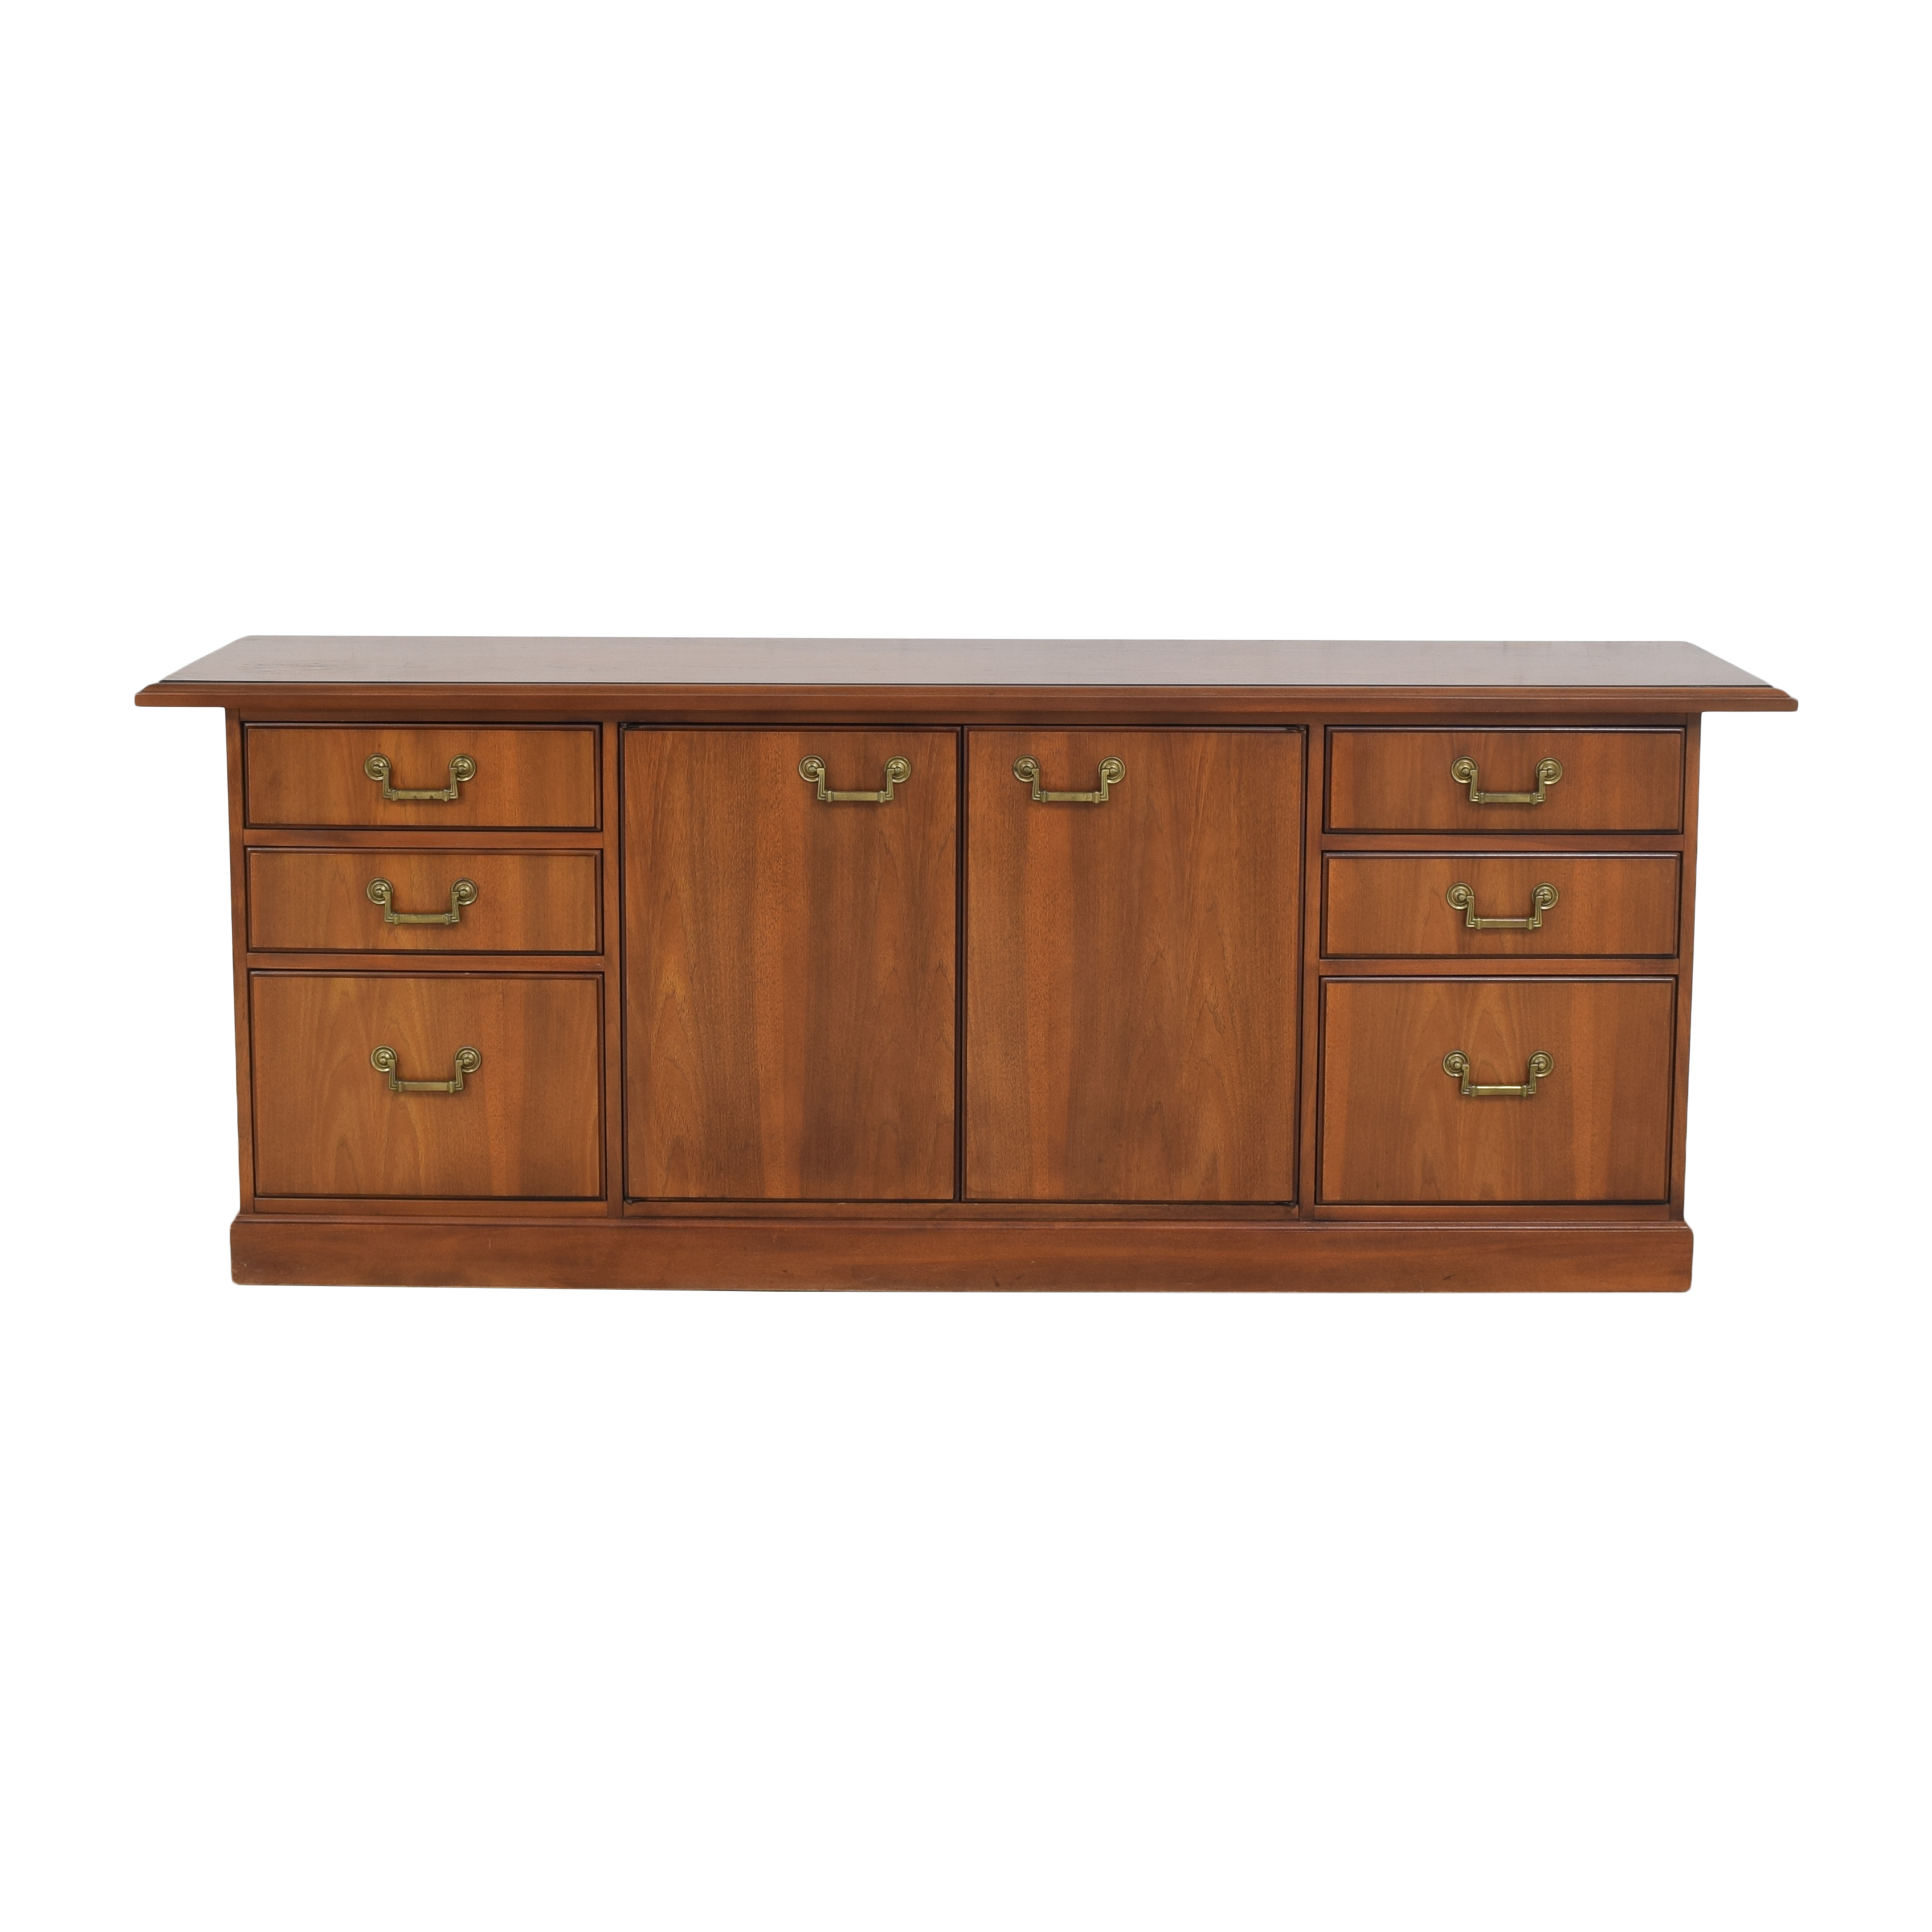 Kimball Kimball Mid Century Executive Credenza brown